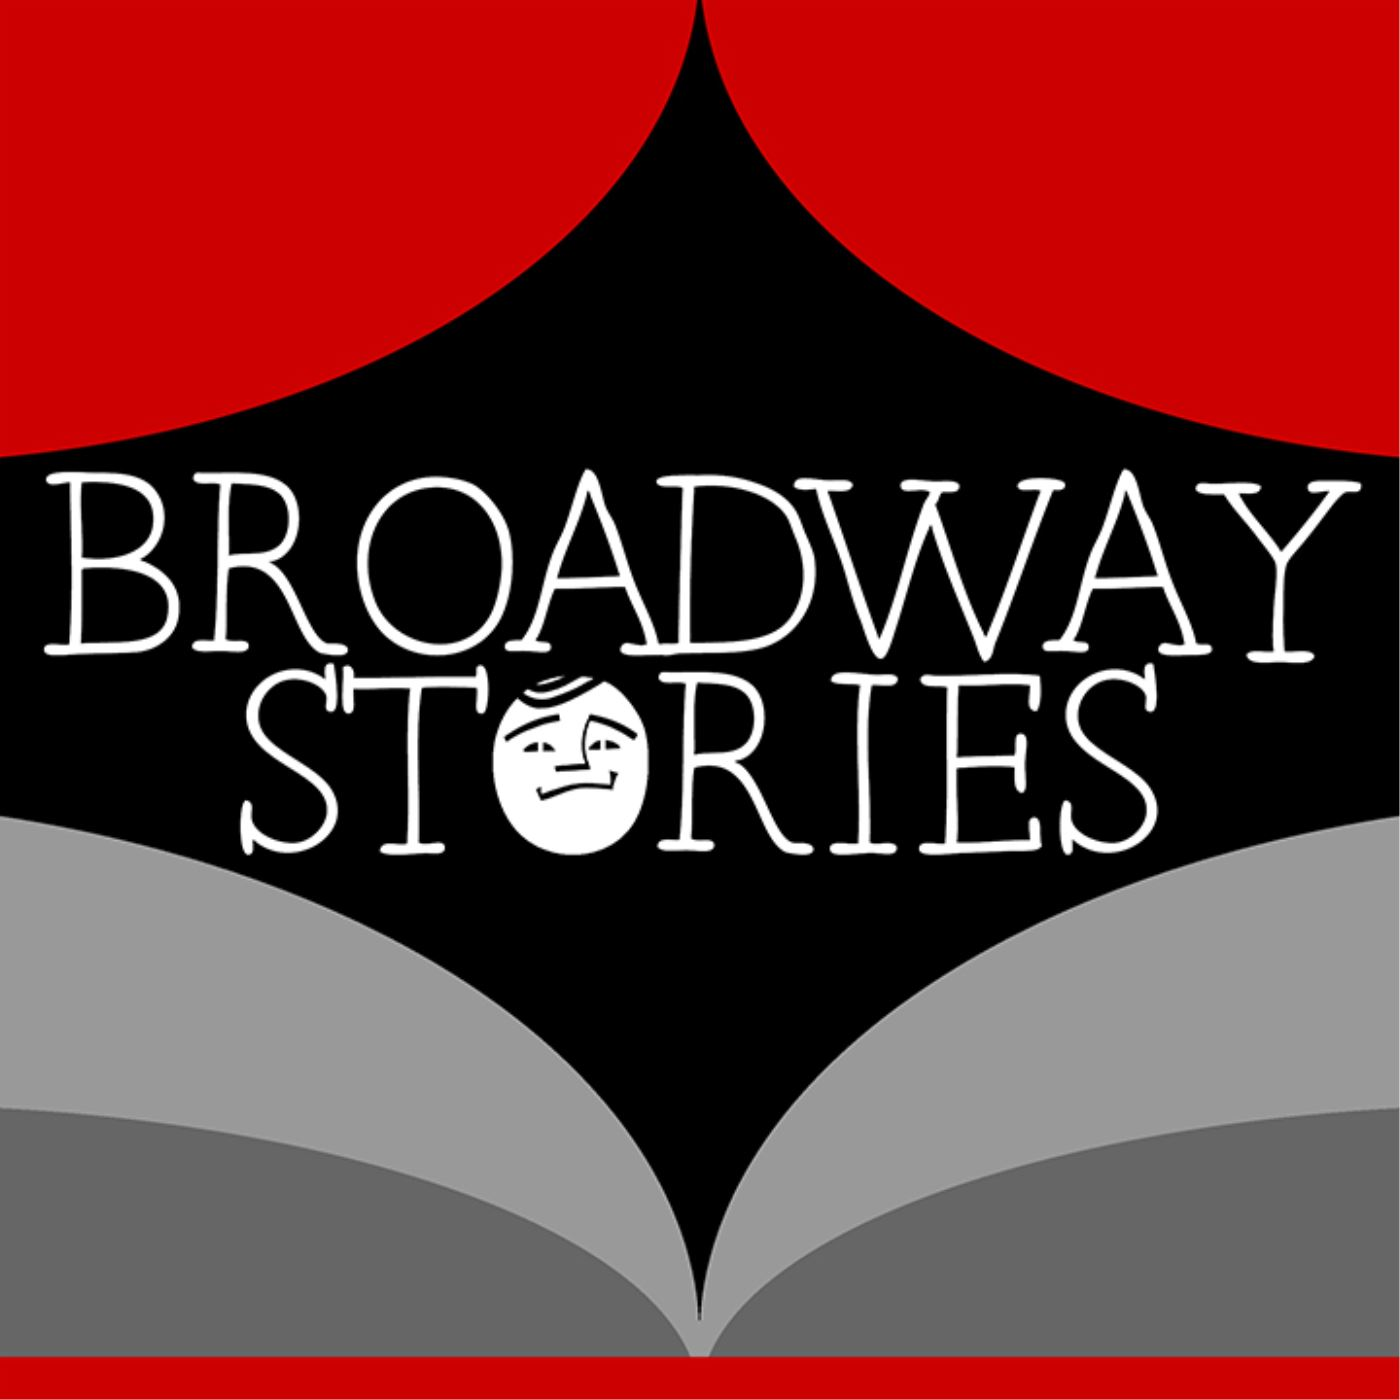 Broadway Stories